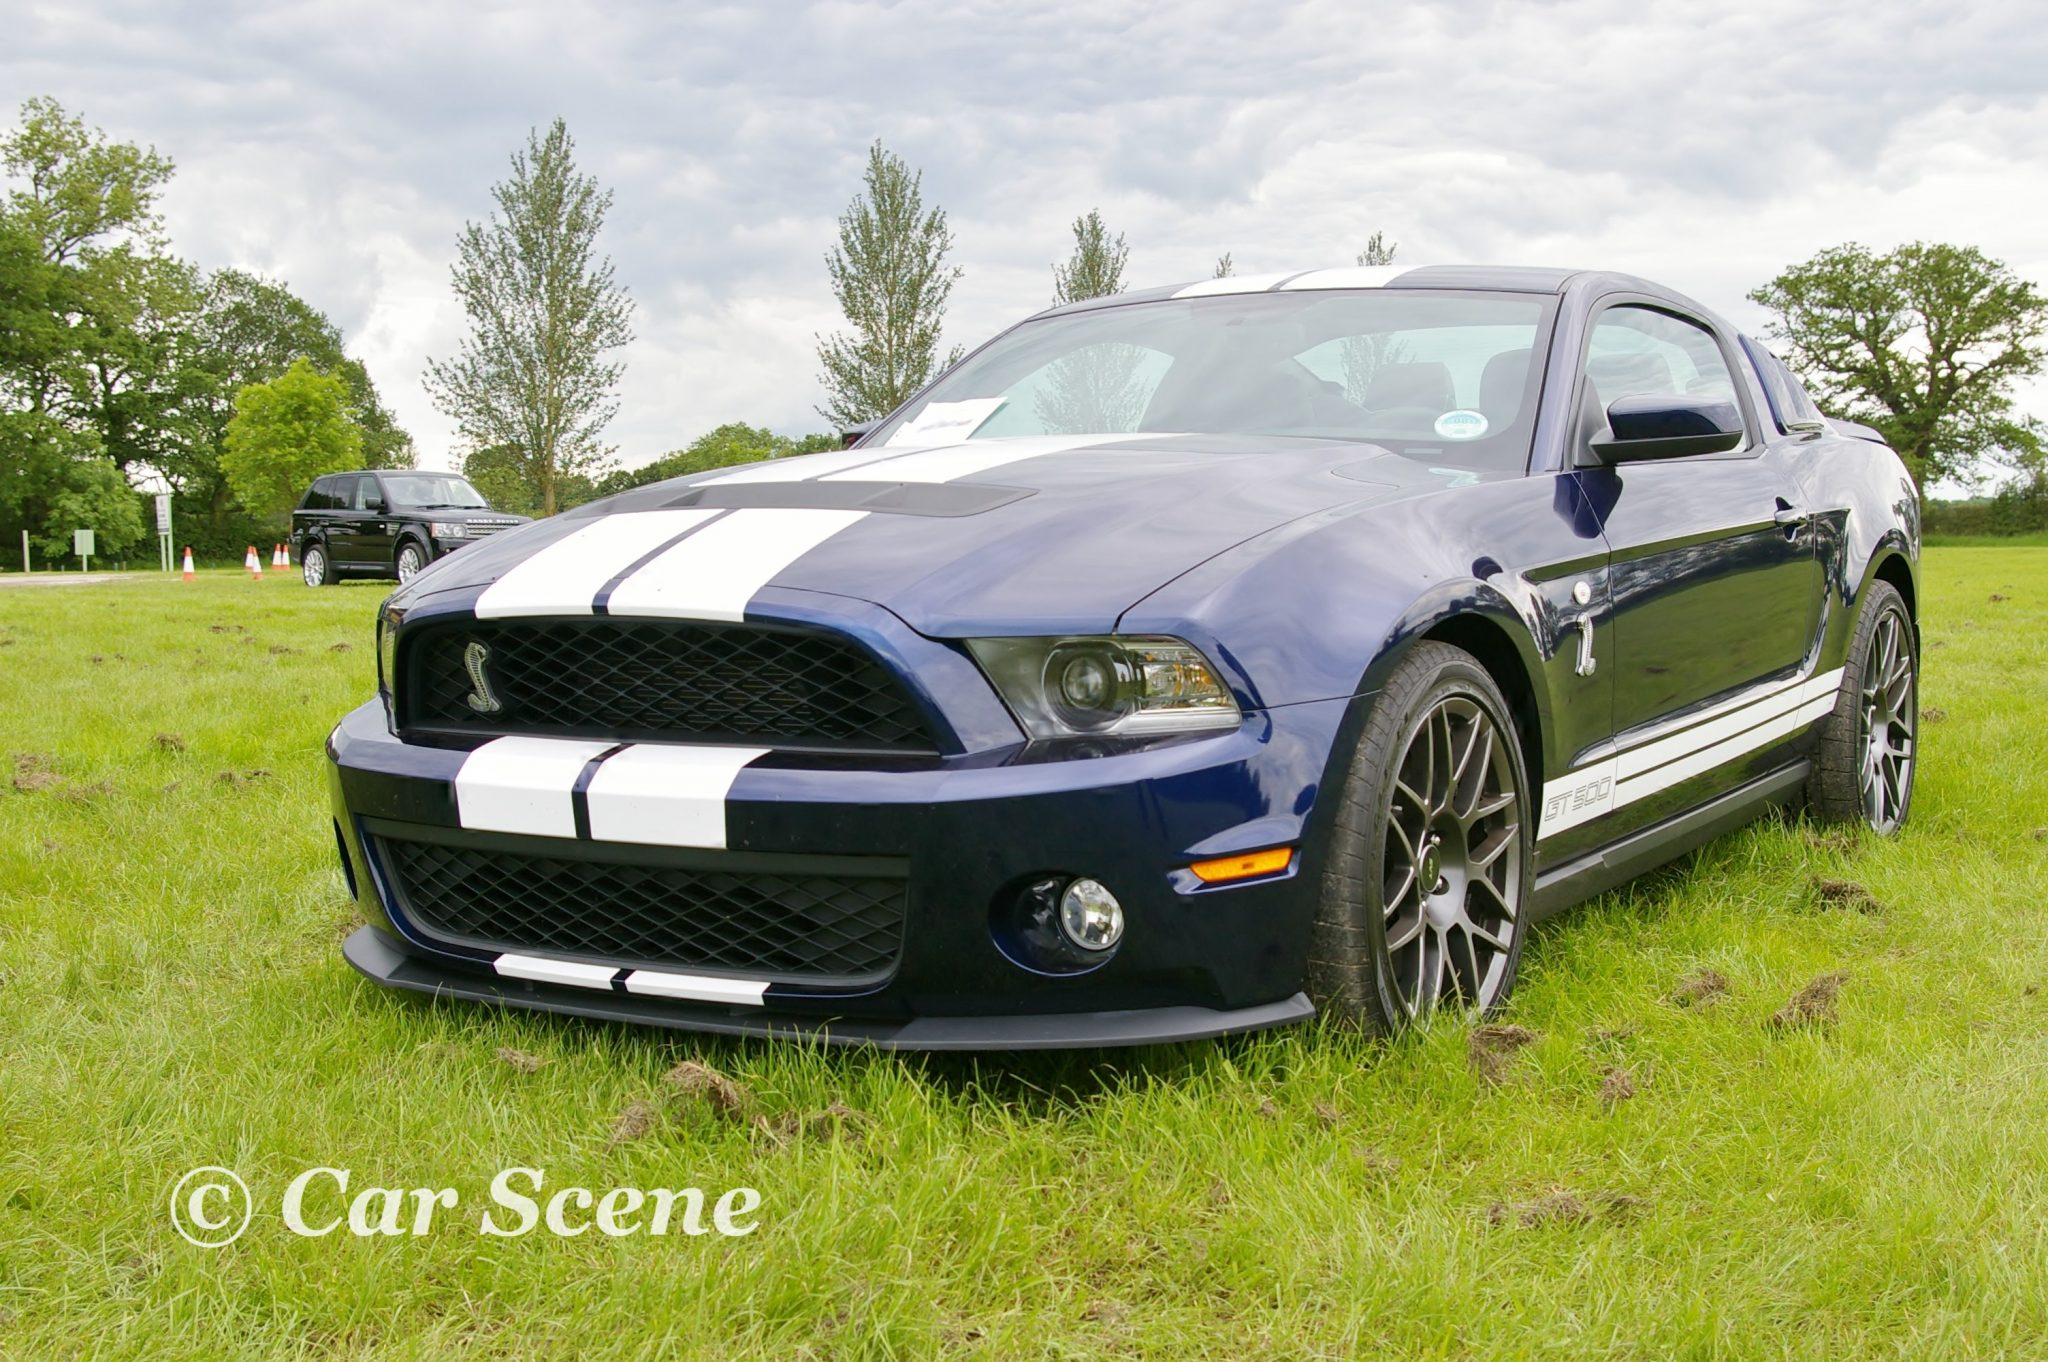 2005 Ford Mustang GT500 front three quarters view